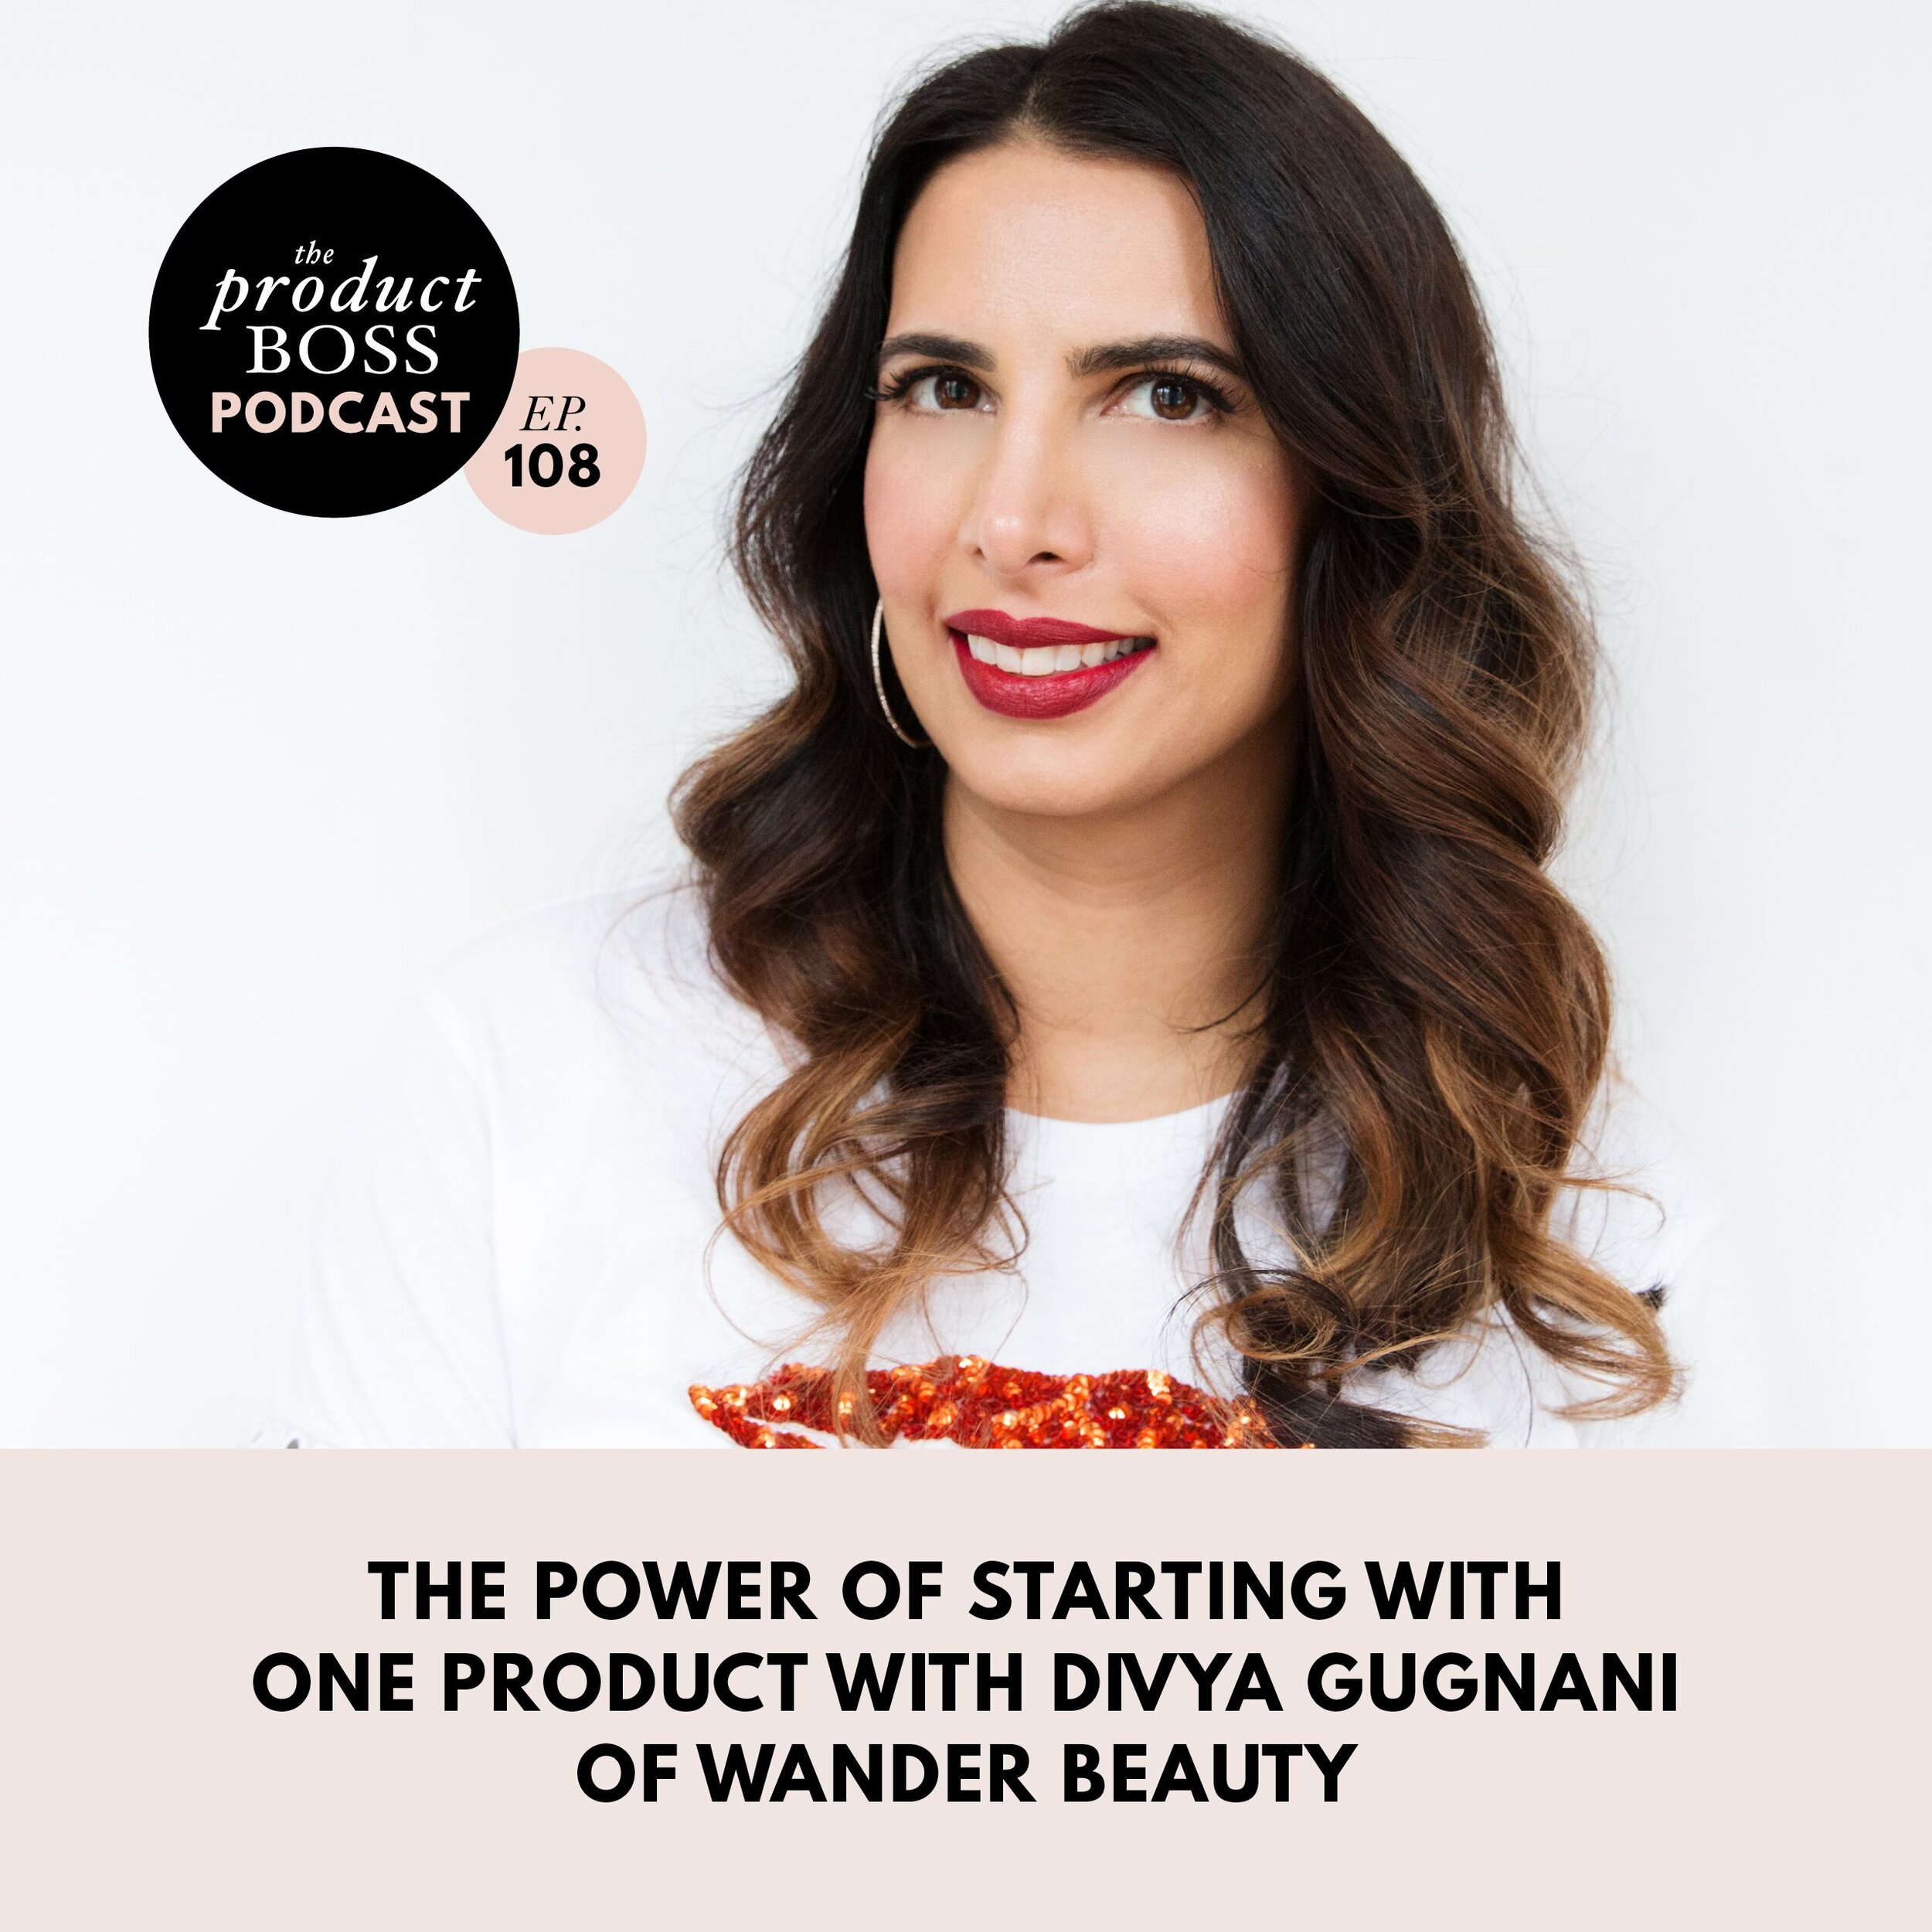 THE POWER OF STARTING WITH ONE PRODUCT DIVYA GUGNANI OF WANDER BEAUTY